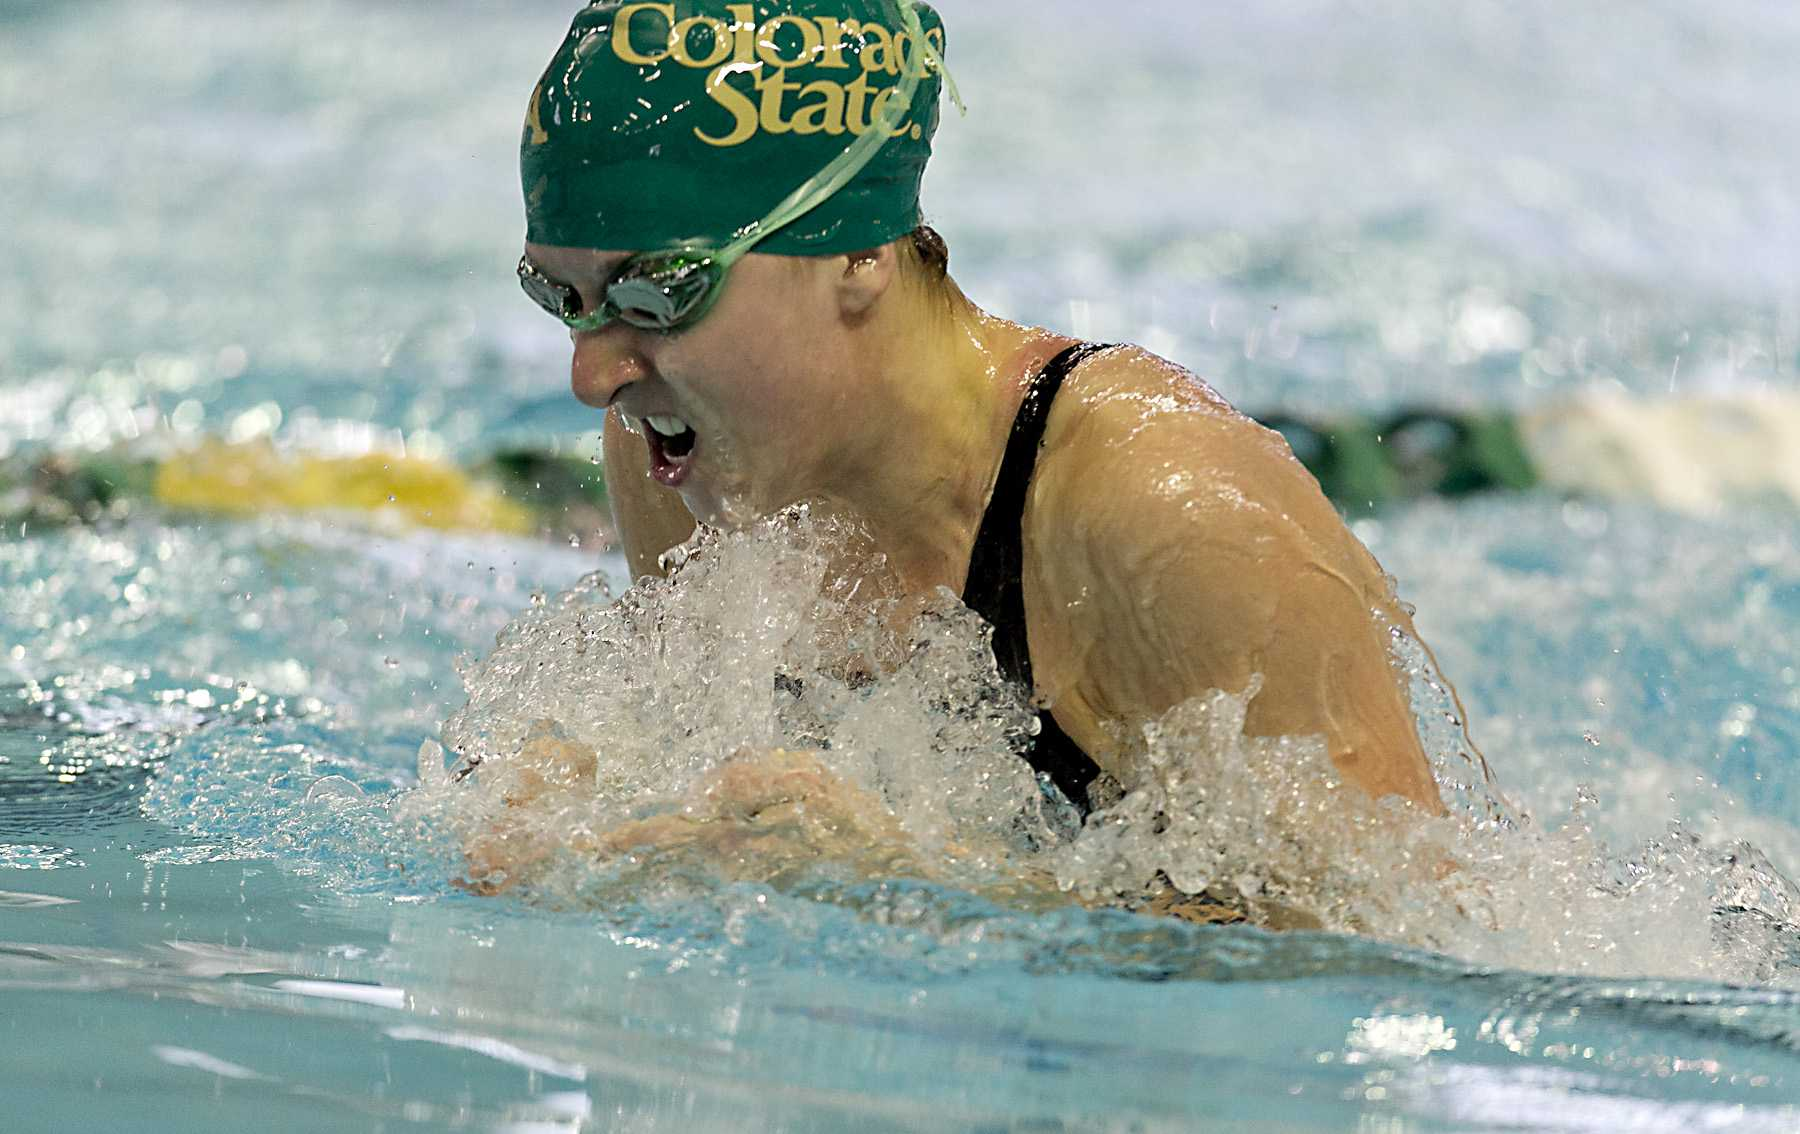 22 FEB 2013:  Colorado State's Kelly Mathews, senior, swims a 1:03.25 in the 100 yard breaststroke prelims of the Mountain West Conference 2013 Women's Swimming and Diving Championships held at Palo Alto Community College Aquatics Center in San Antonio, Texas, on Friday, February 22, 2013.  NCAA/ Rodolfo Gonzalez